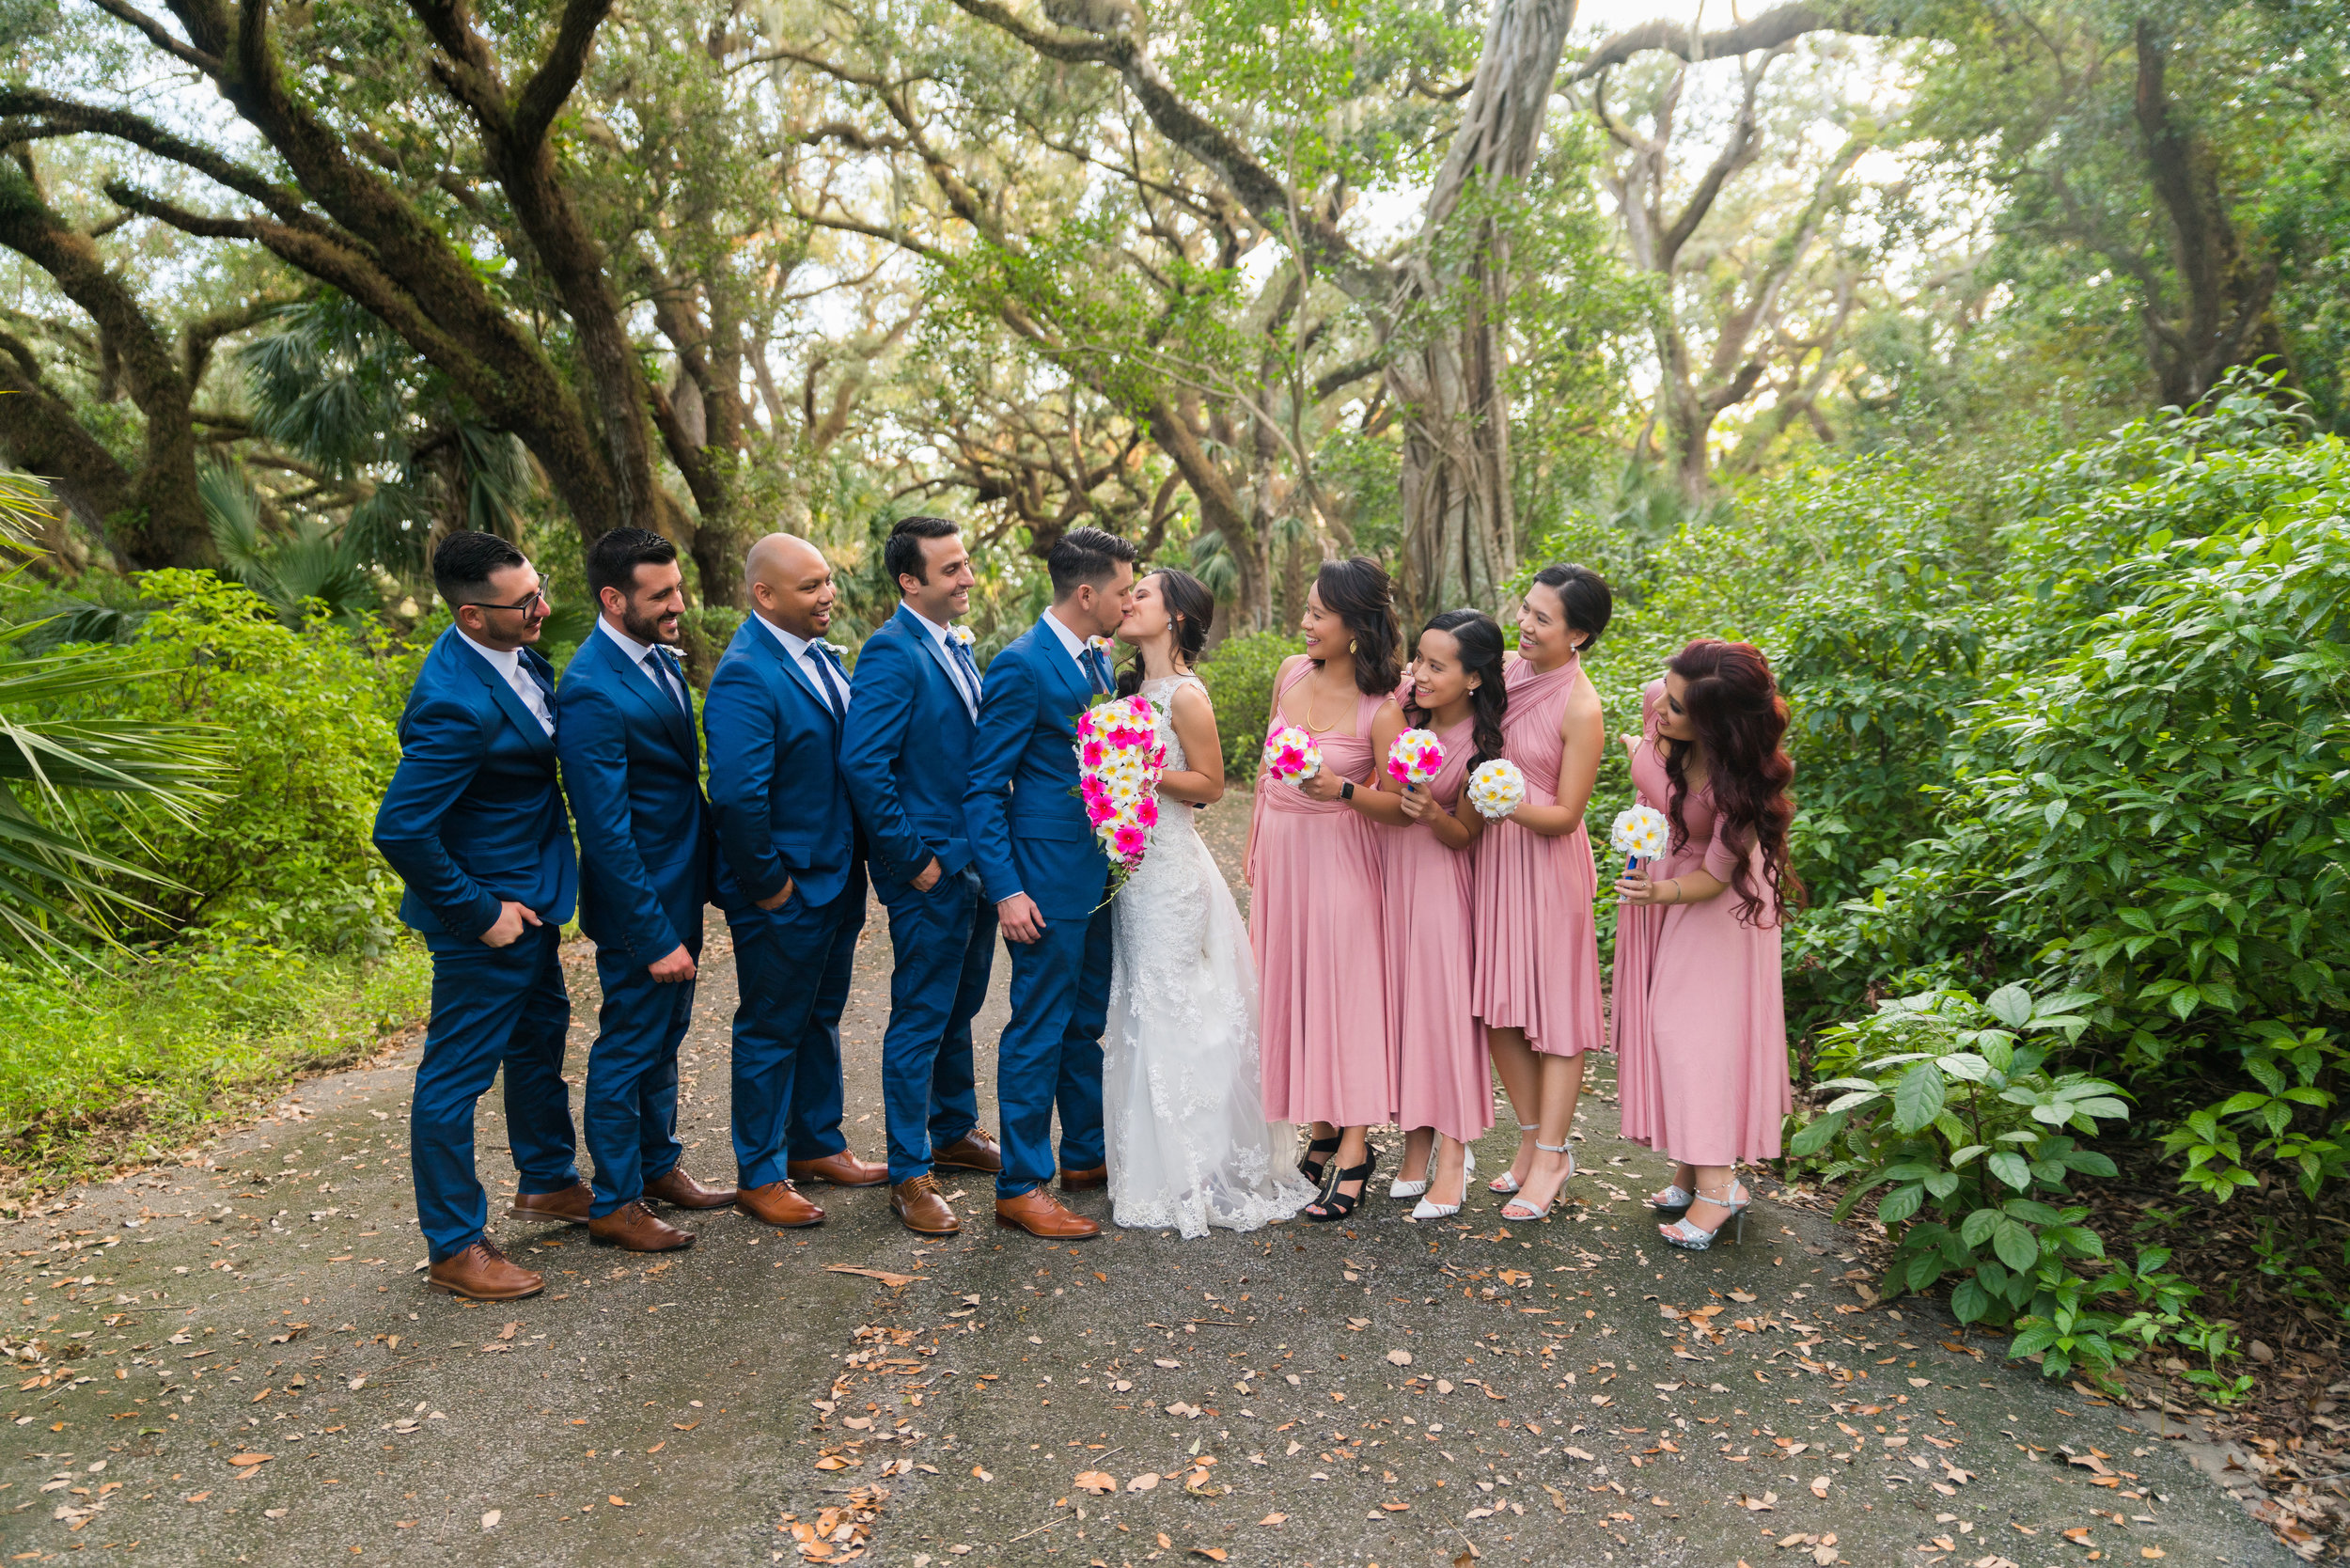 Wedding Party Portraits - Destination Wedding